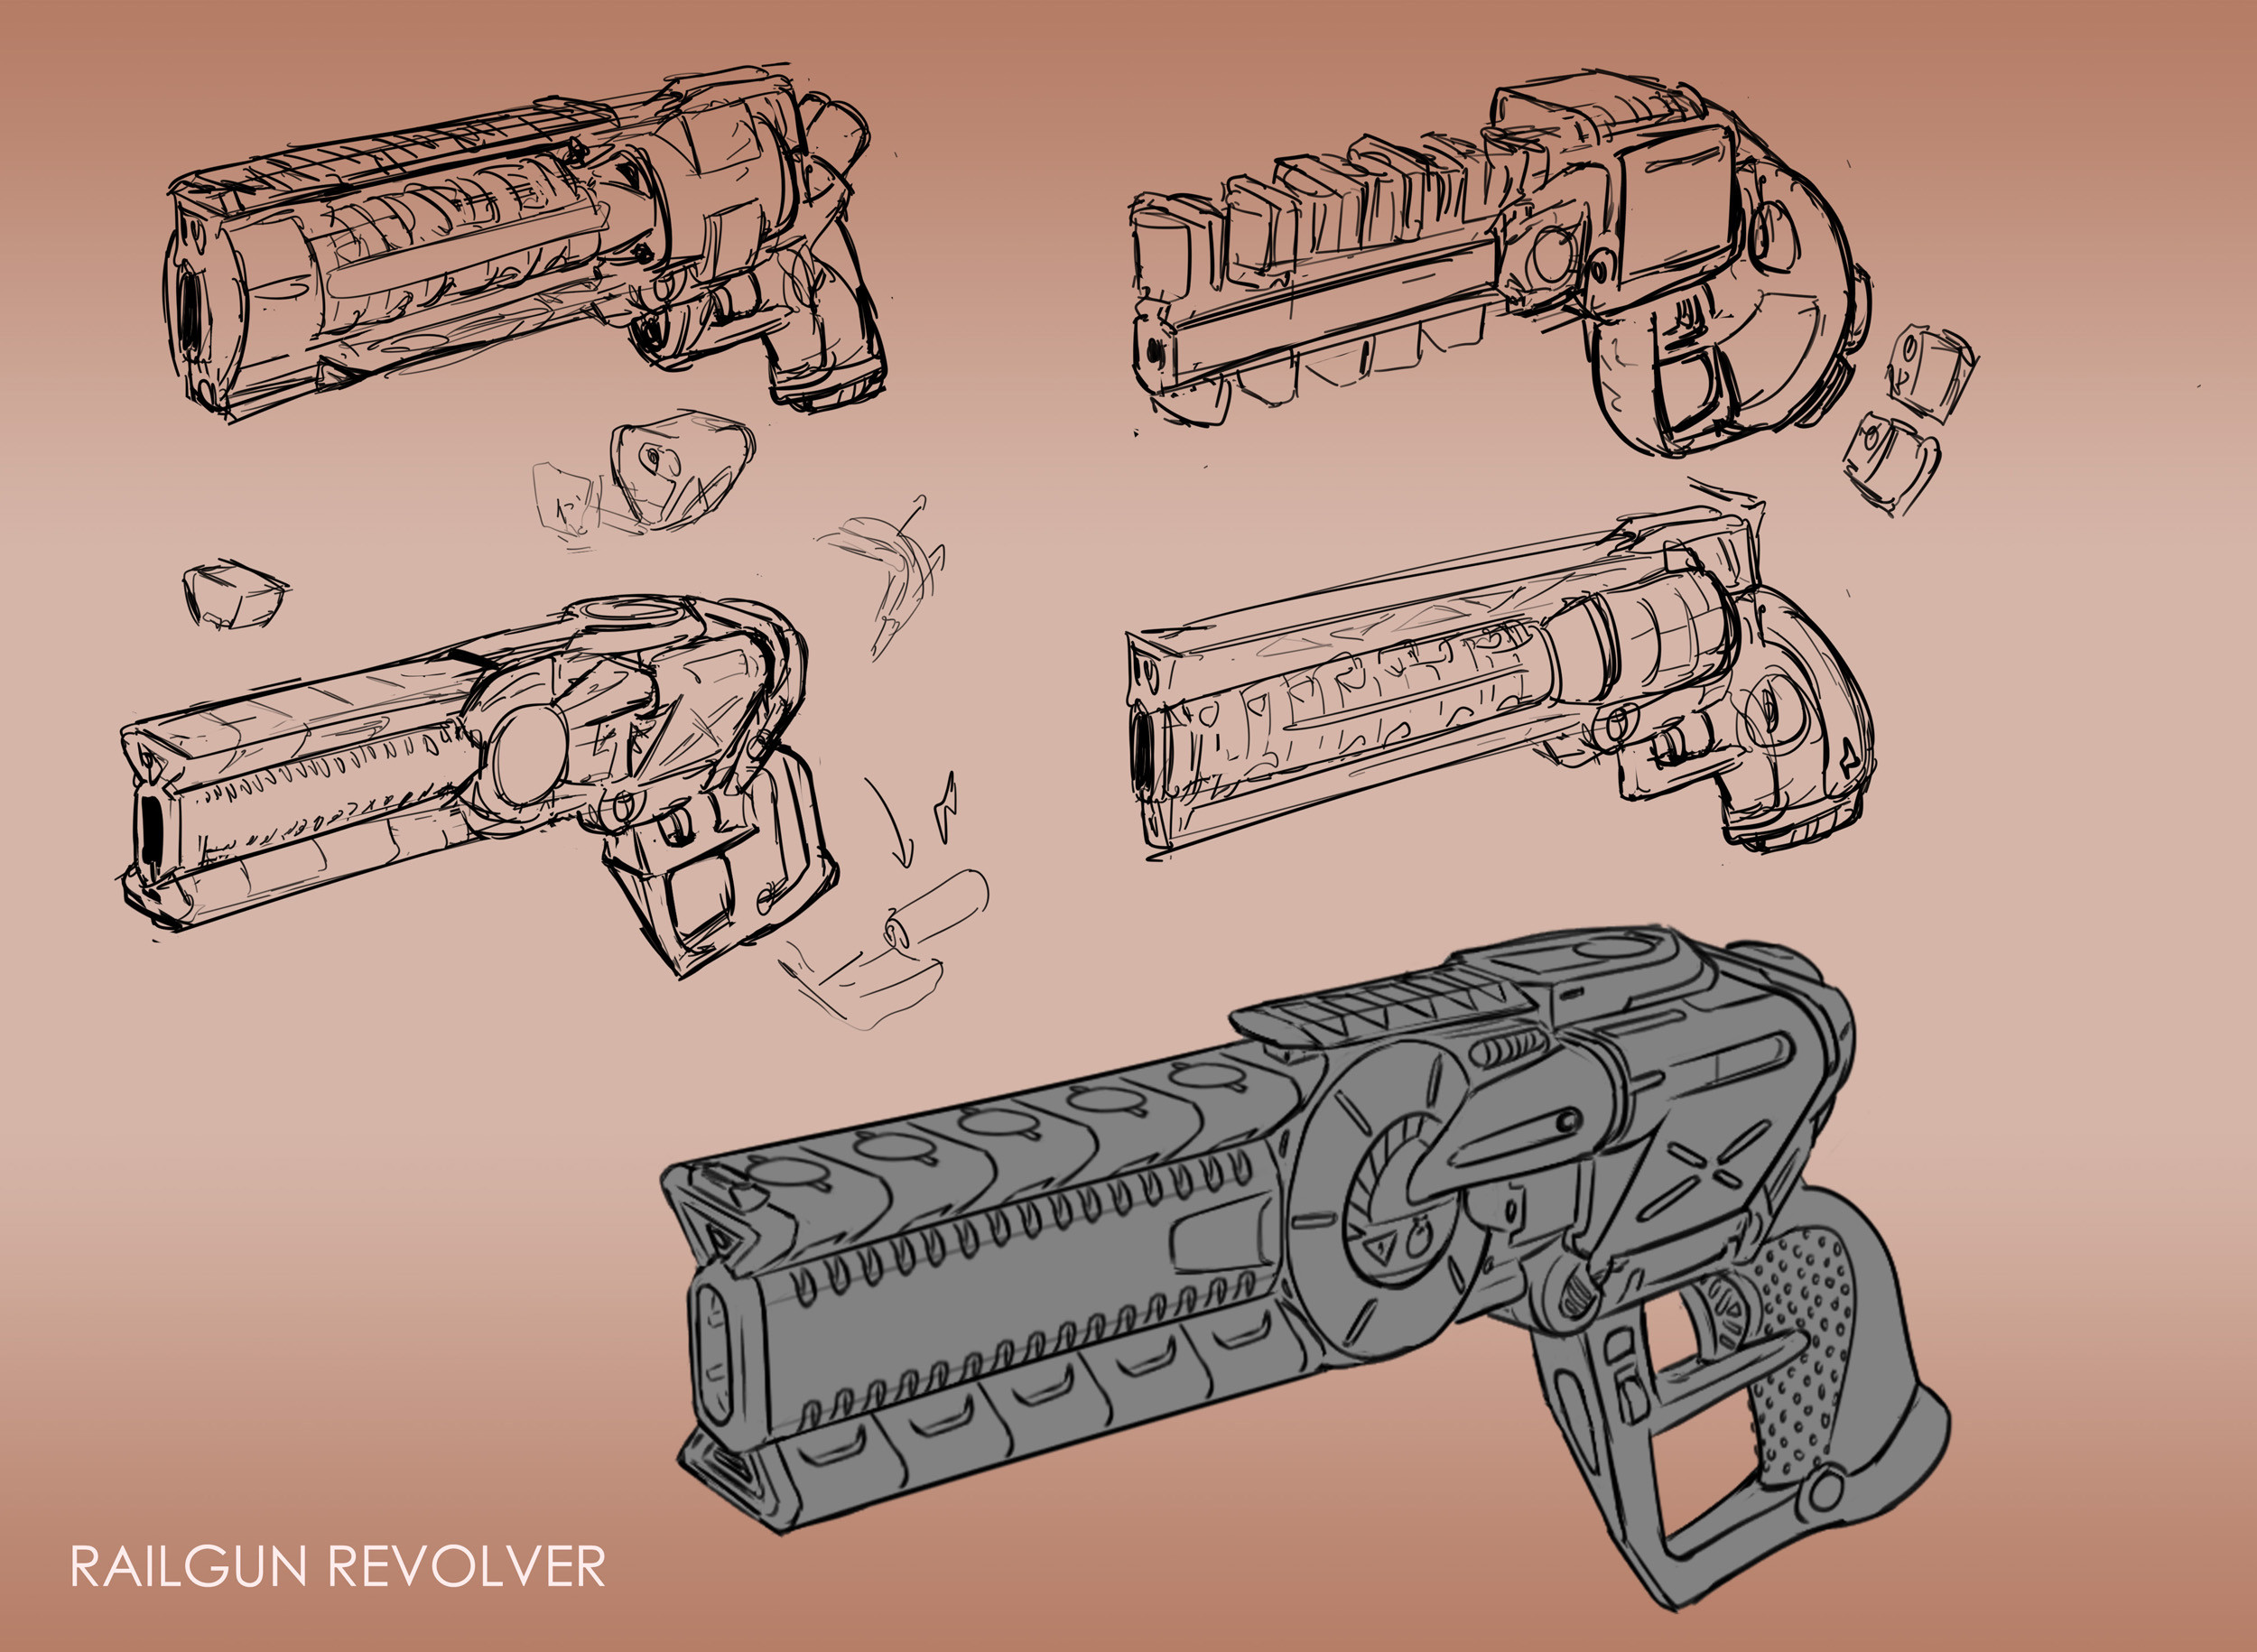 Quick design sketches for the sidearm